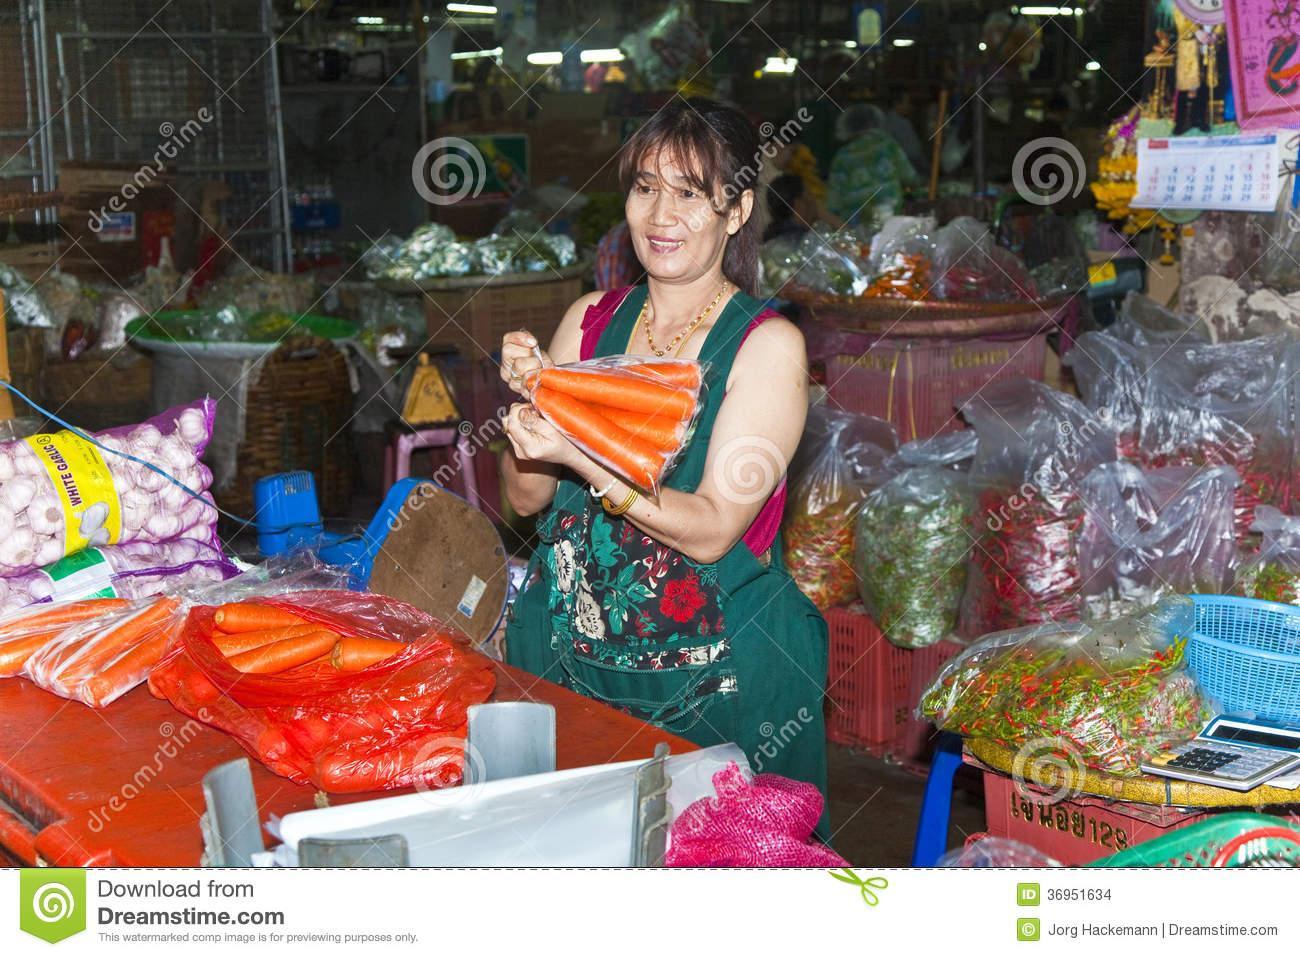 a description of the market near my home Customer service faqs account registration contact us customer  comments digital coupon policy my prescription faqs recall alerts  feedback.